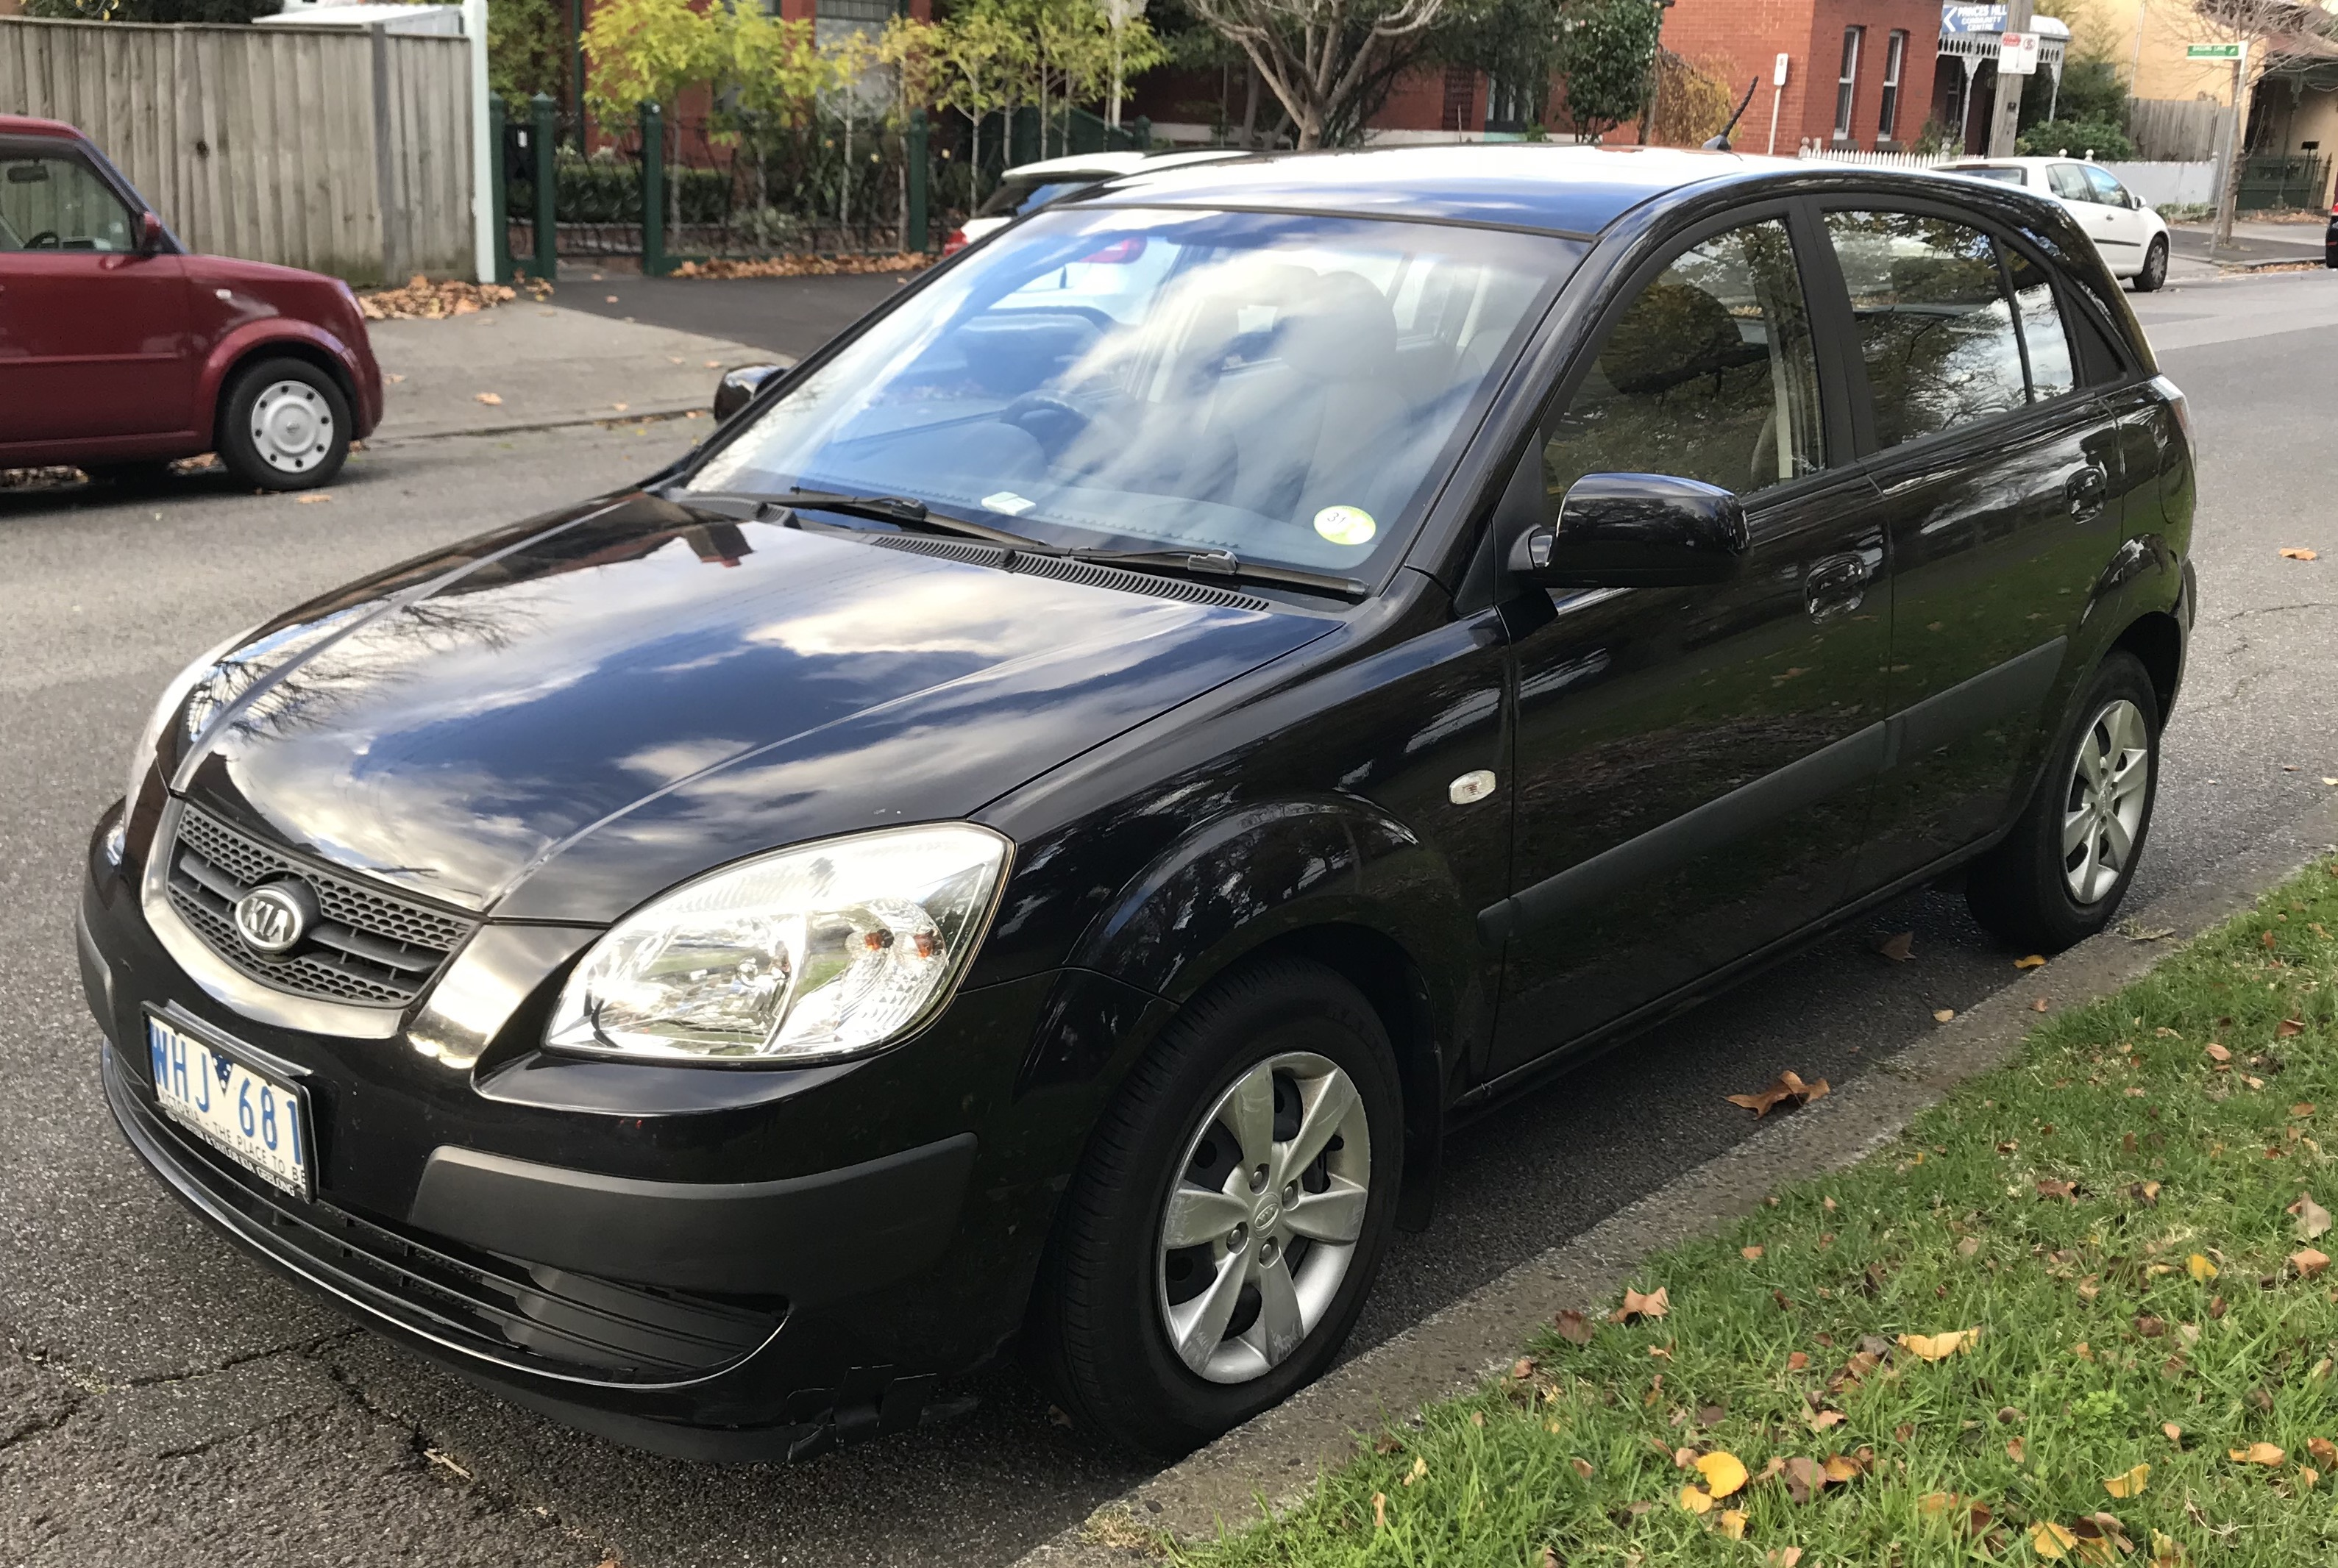 Picture of Zoe's 2008 Kia Rio